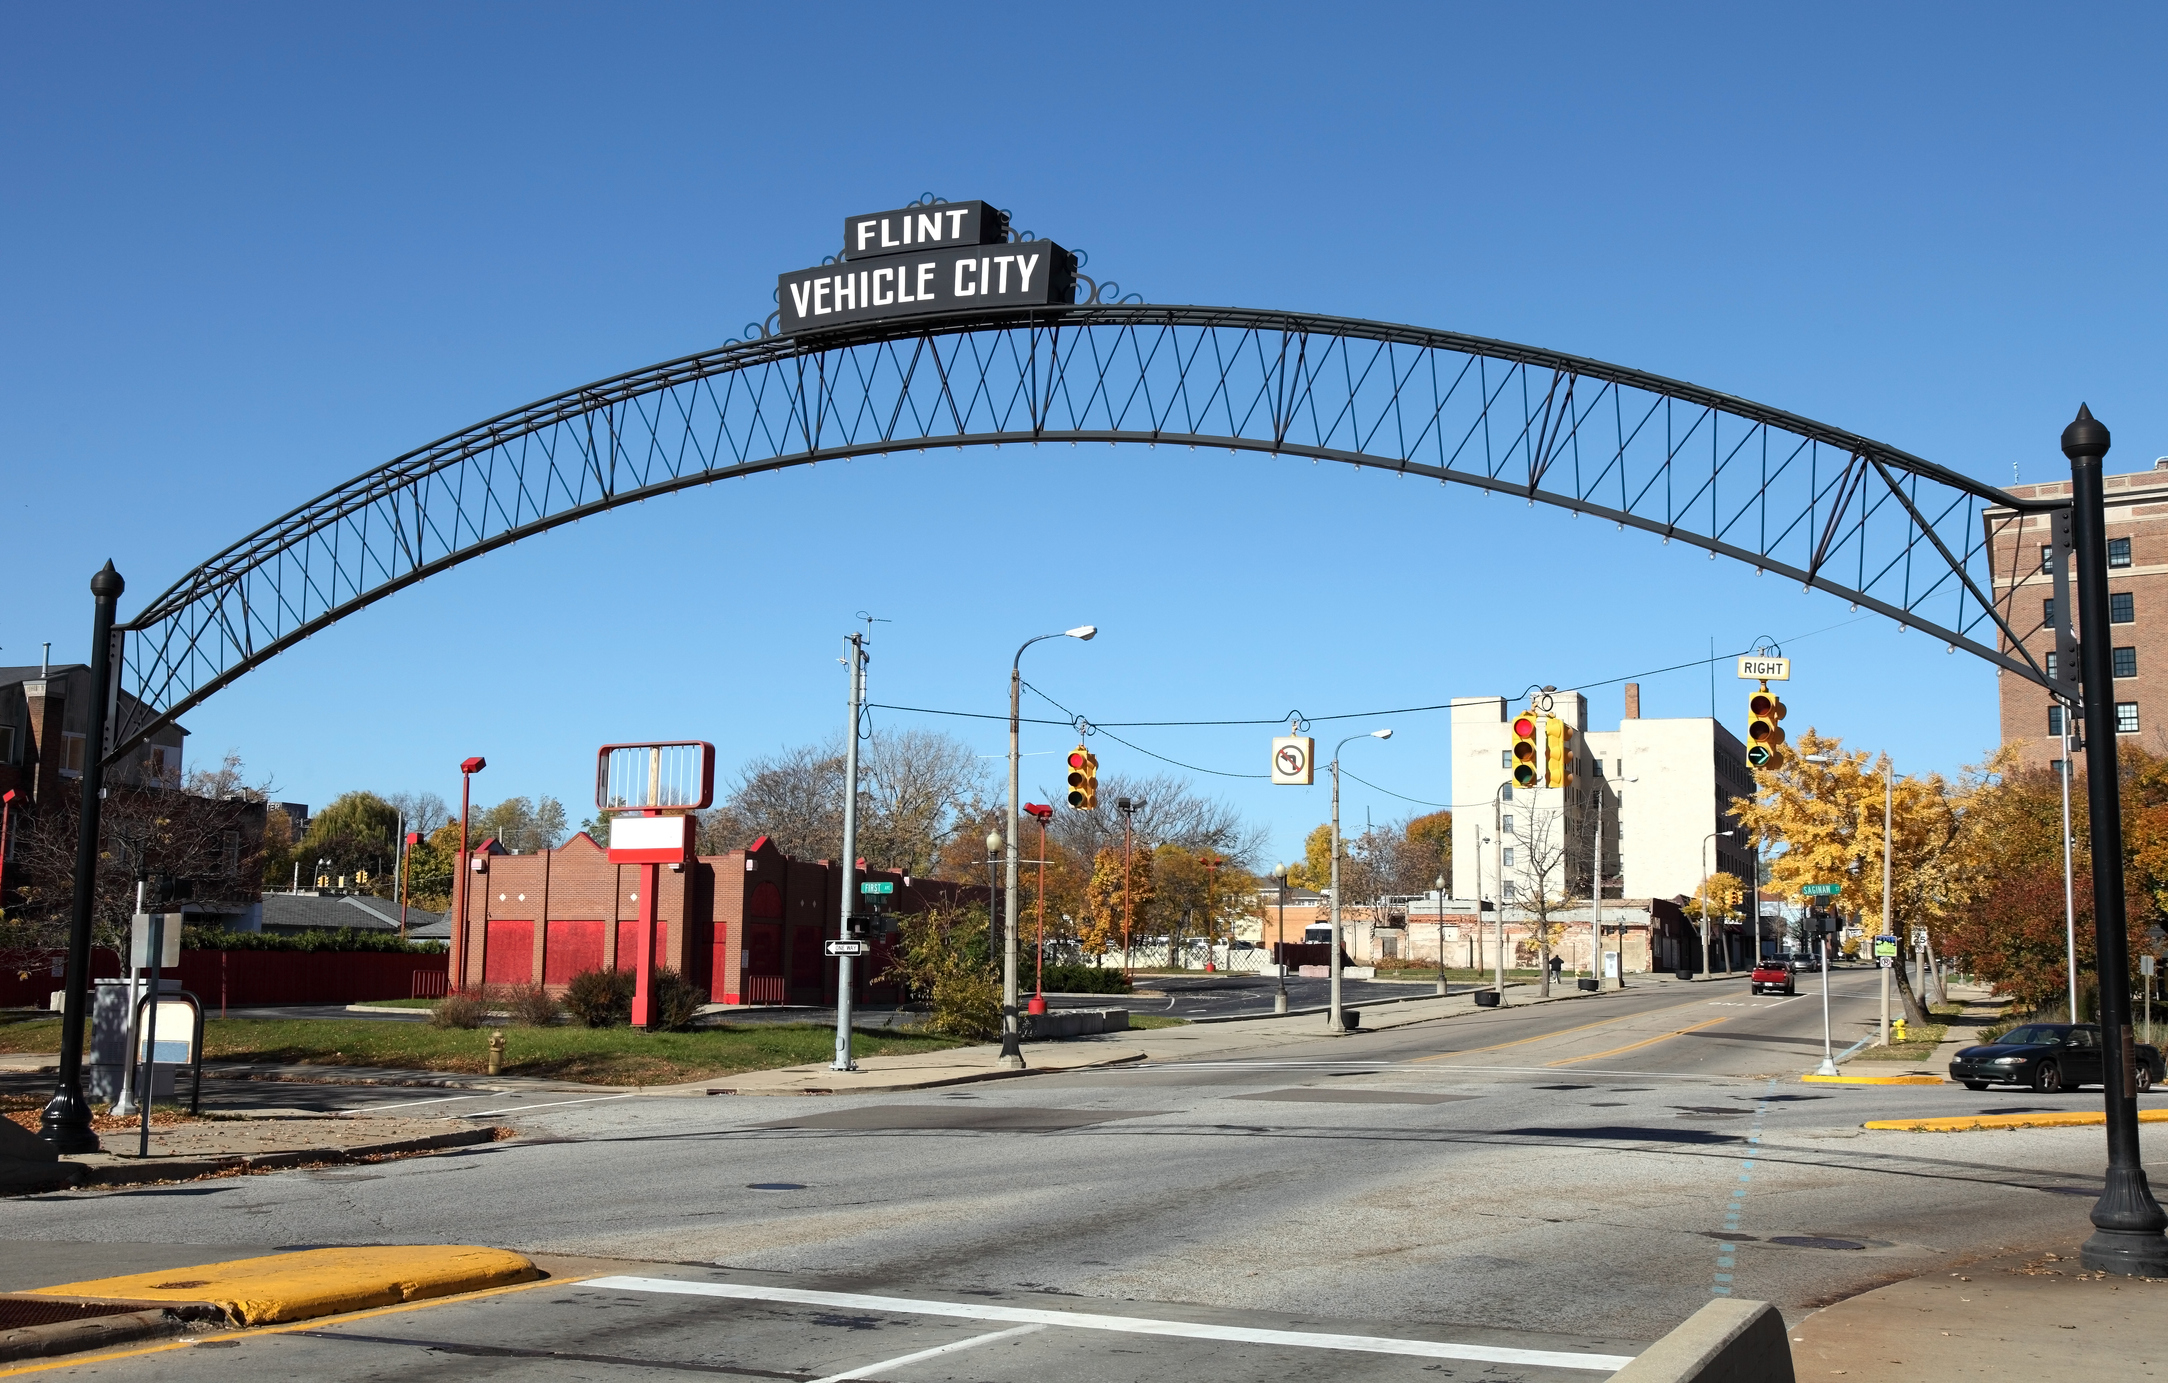 Flint Vehicle City sign entering downtown